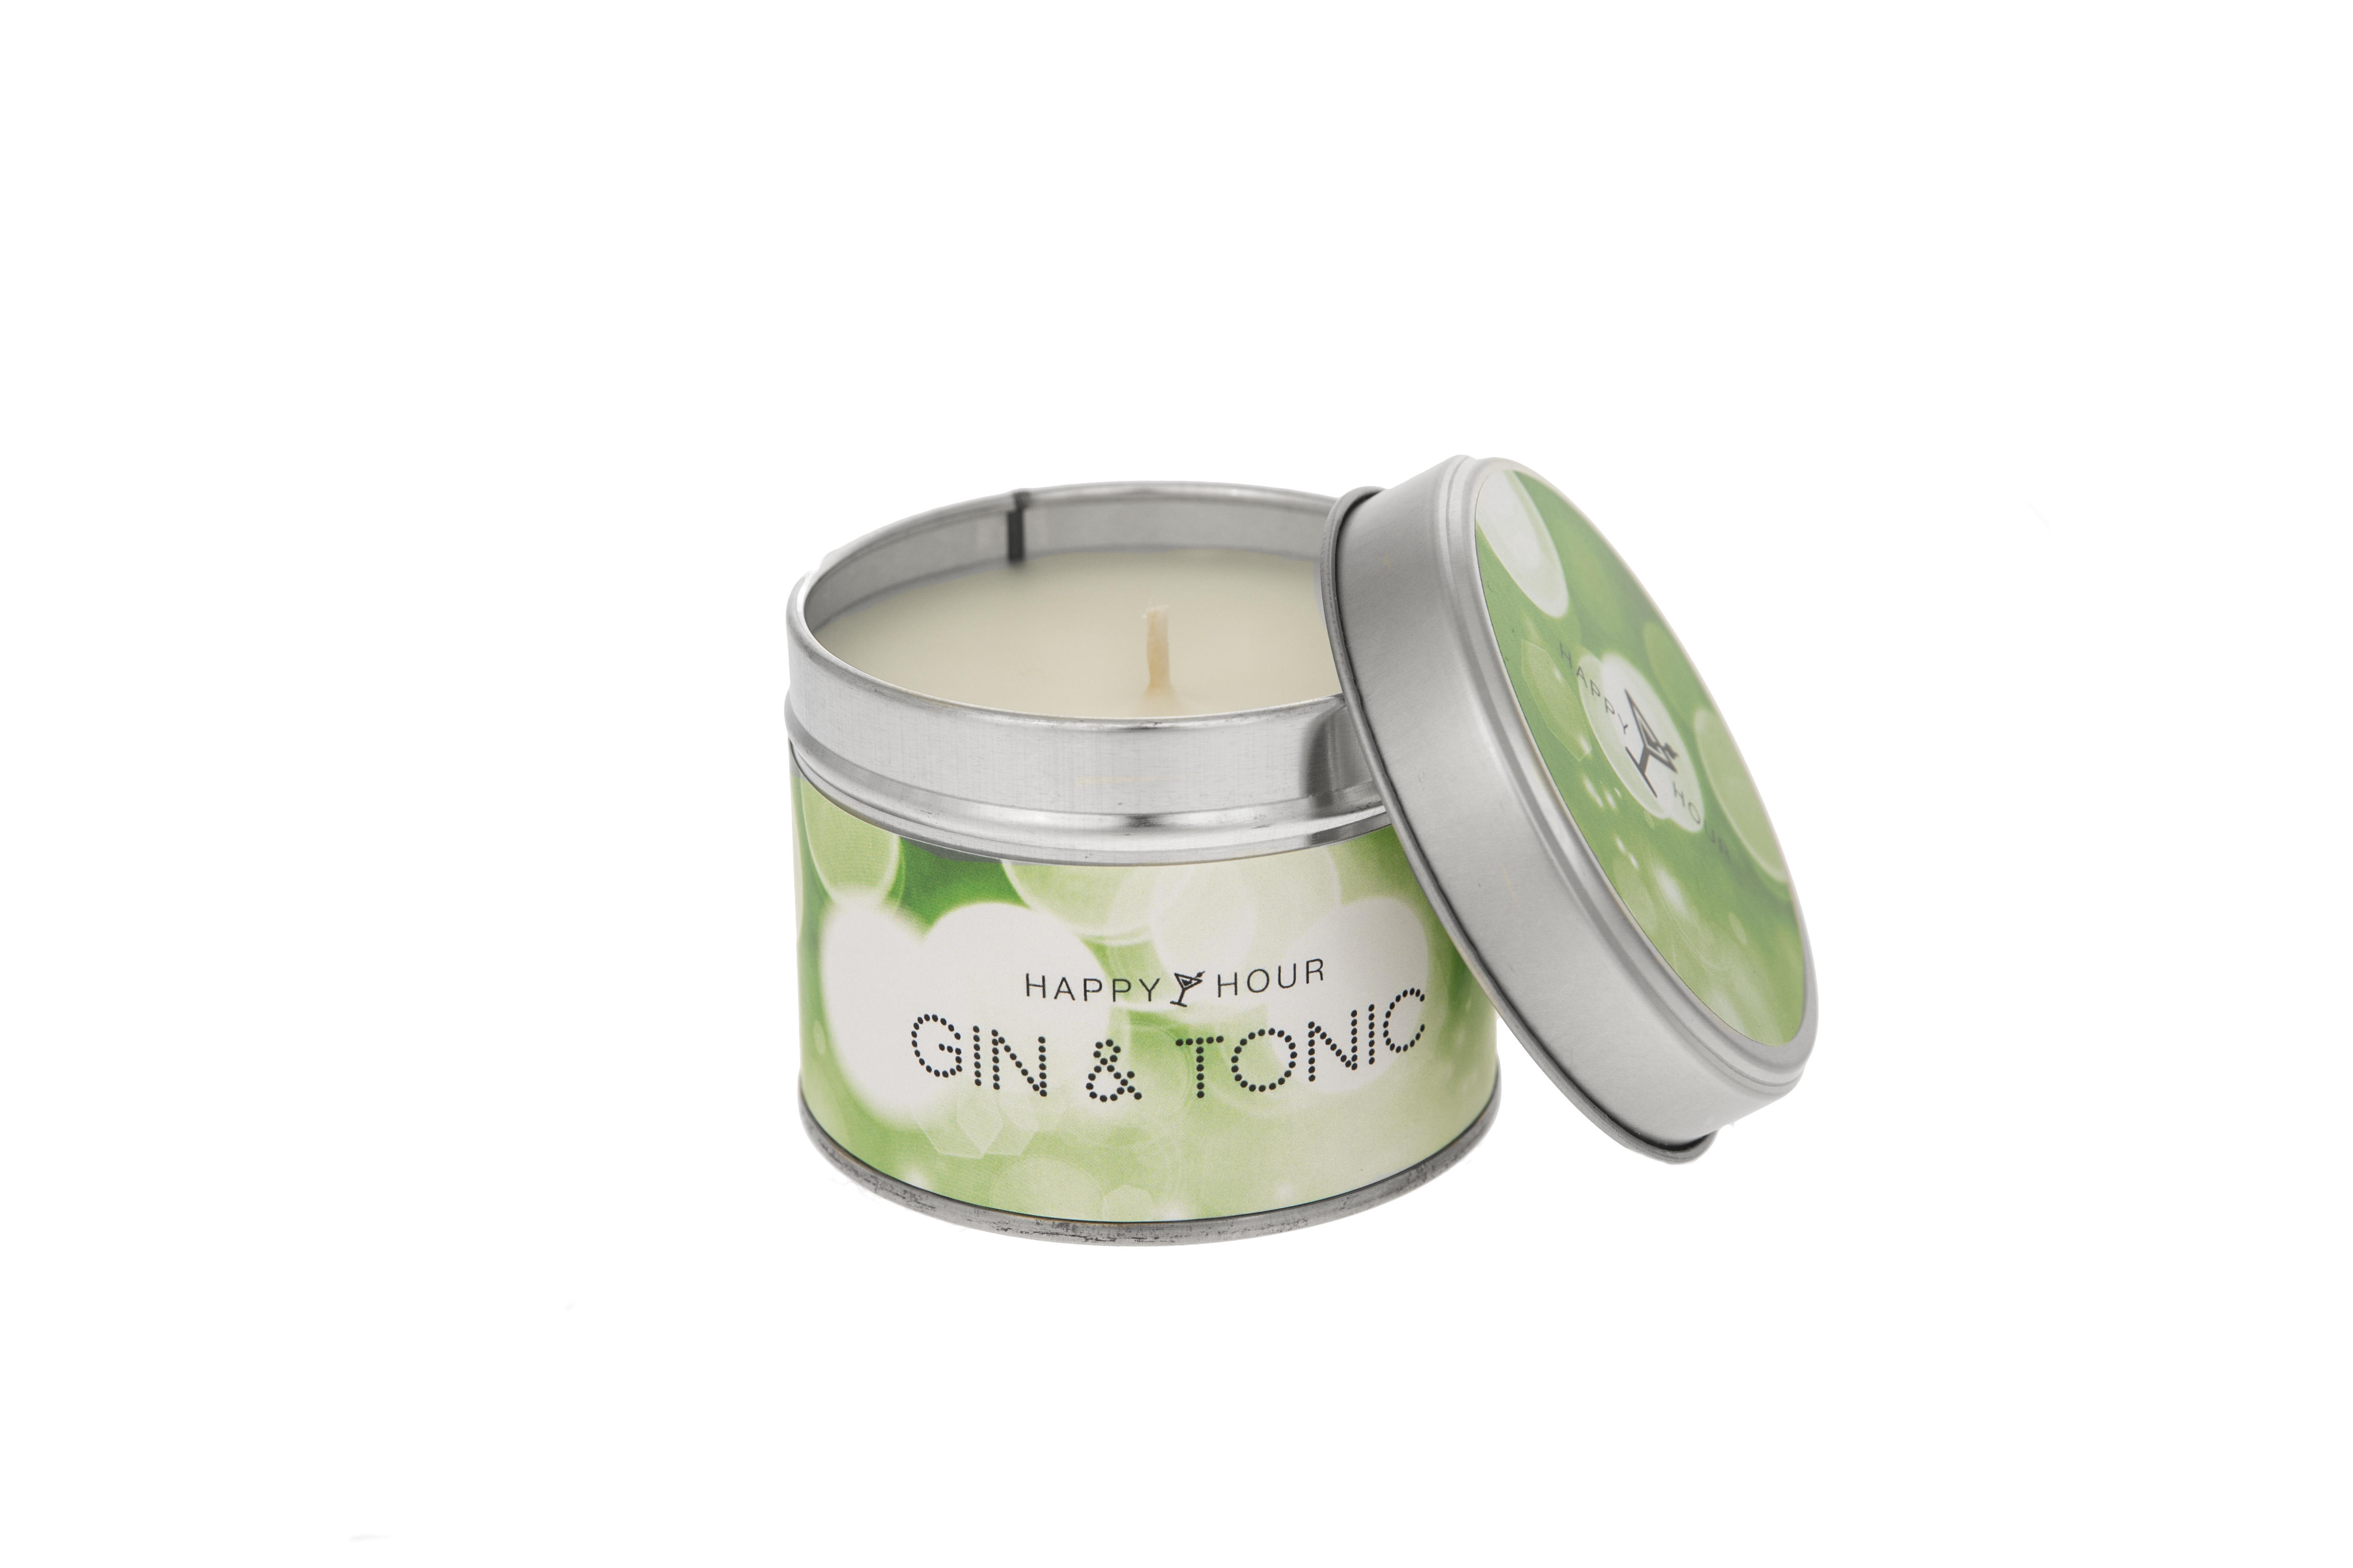 Gin & Tonic Happy Hour by Pintail Candles